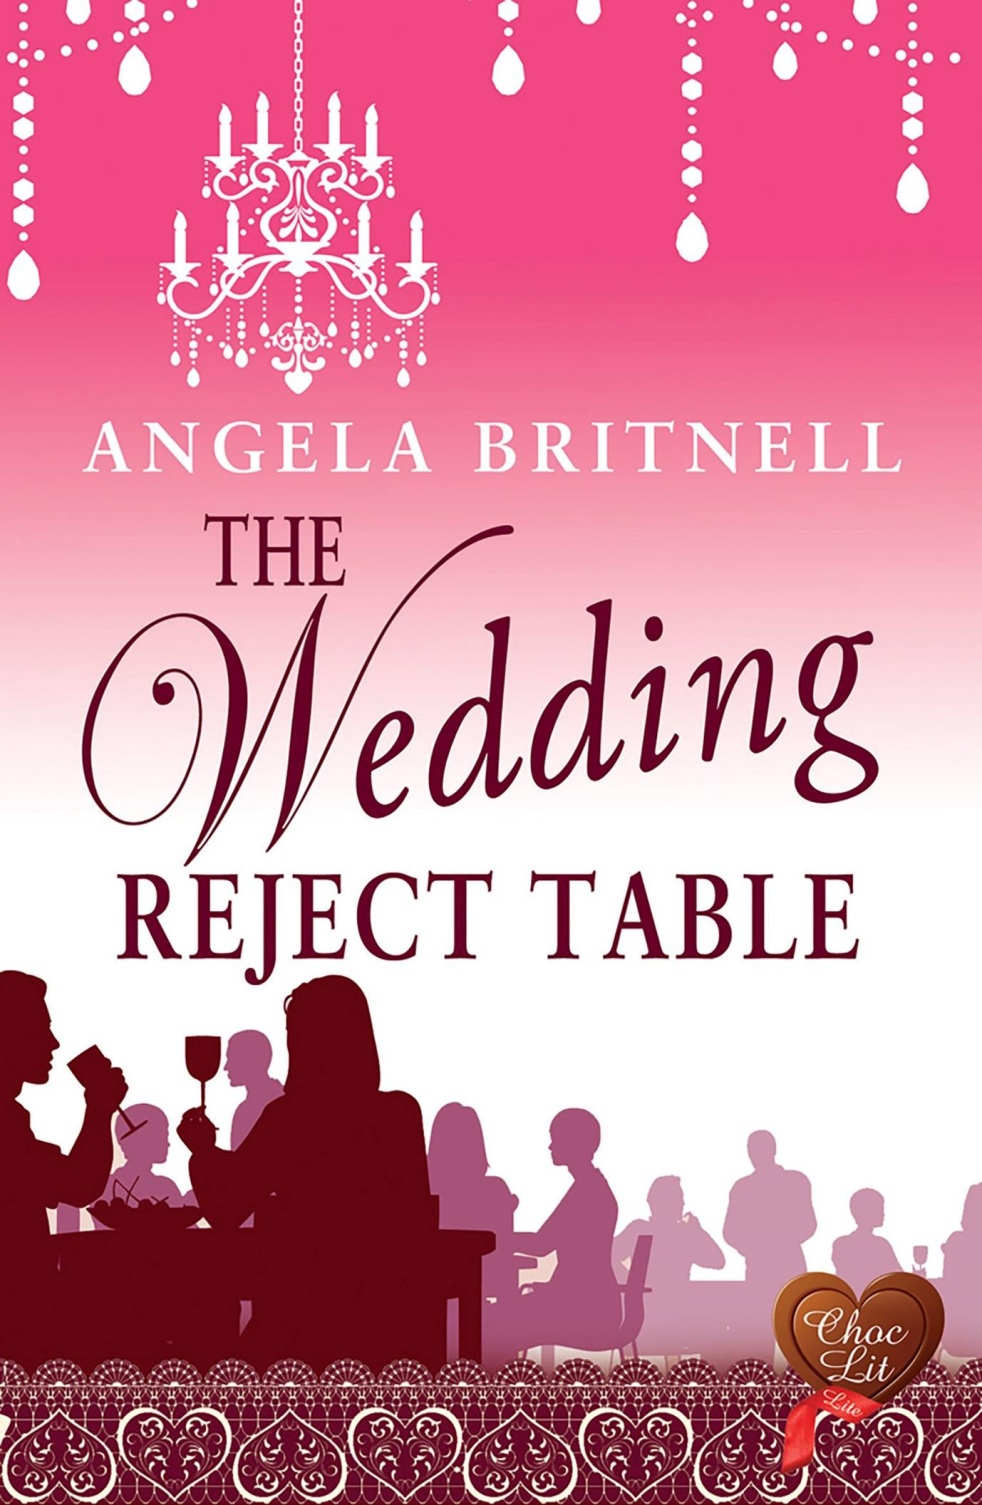 angela britnell, helena fairfax, wedding reject table